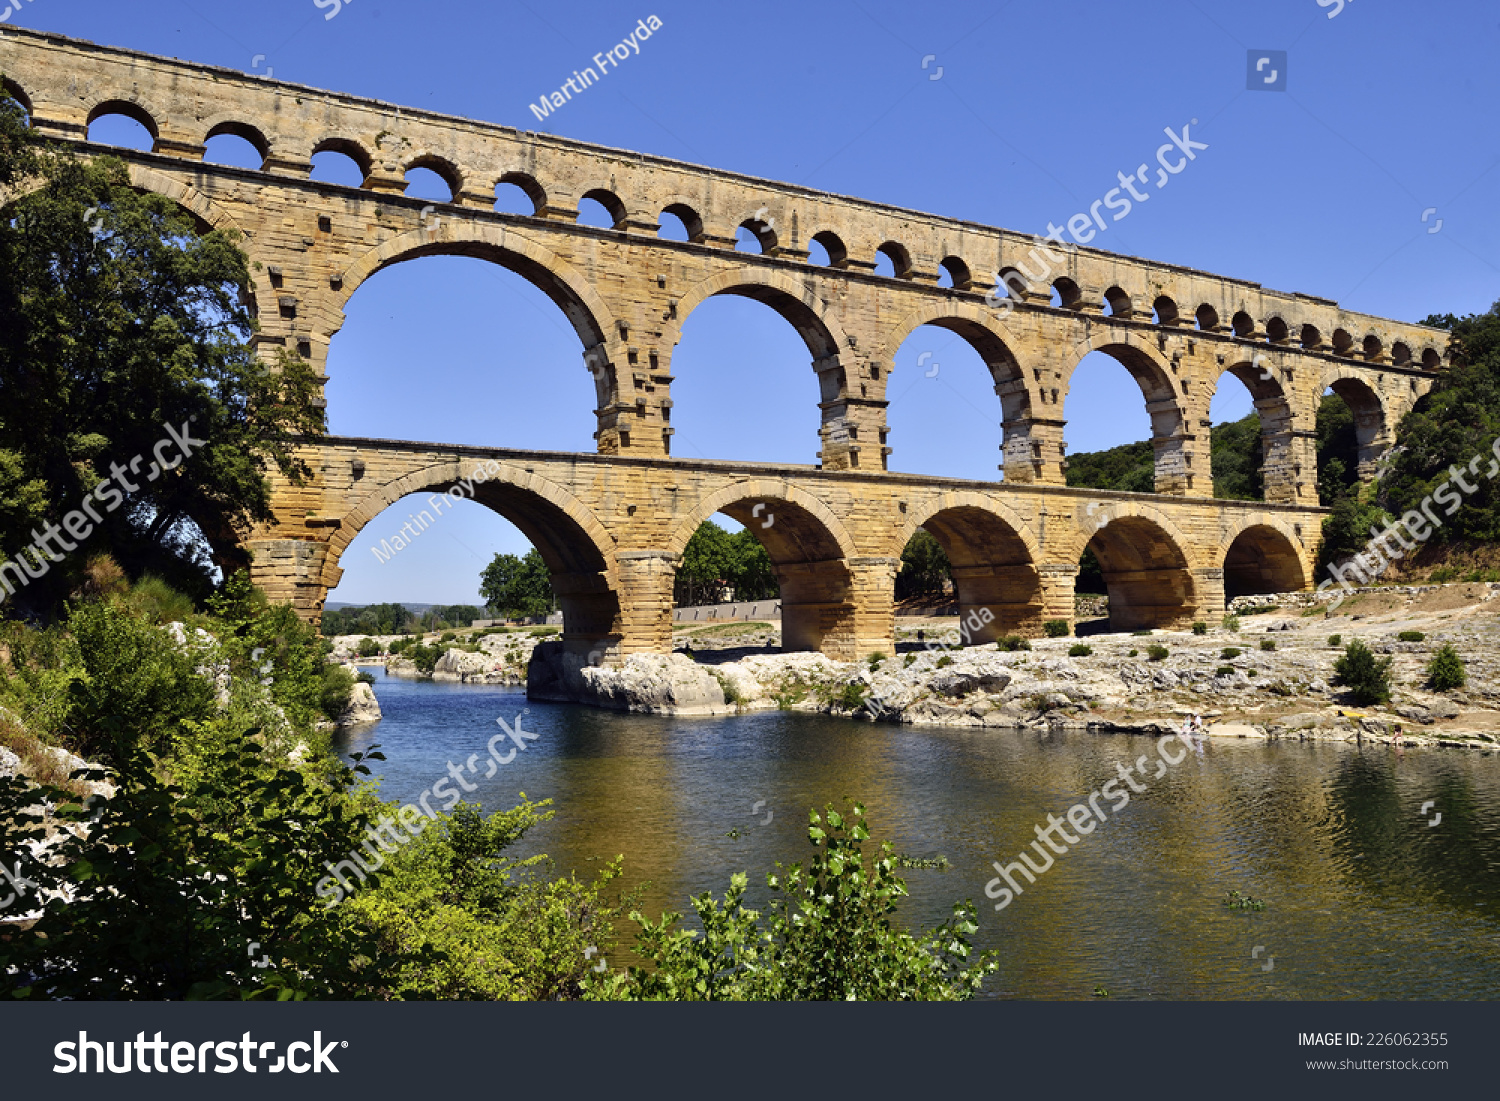 How Old Is The Aqueduct At Nimes 17